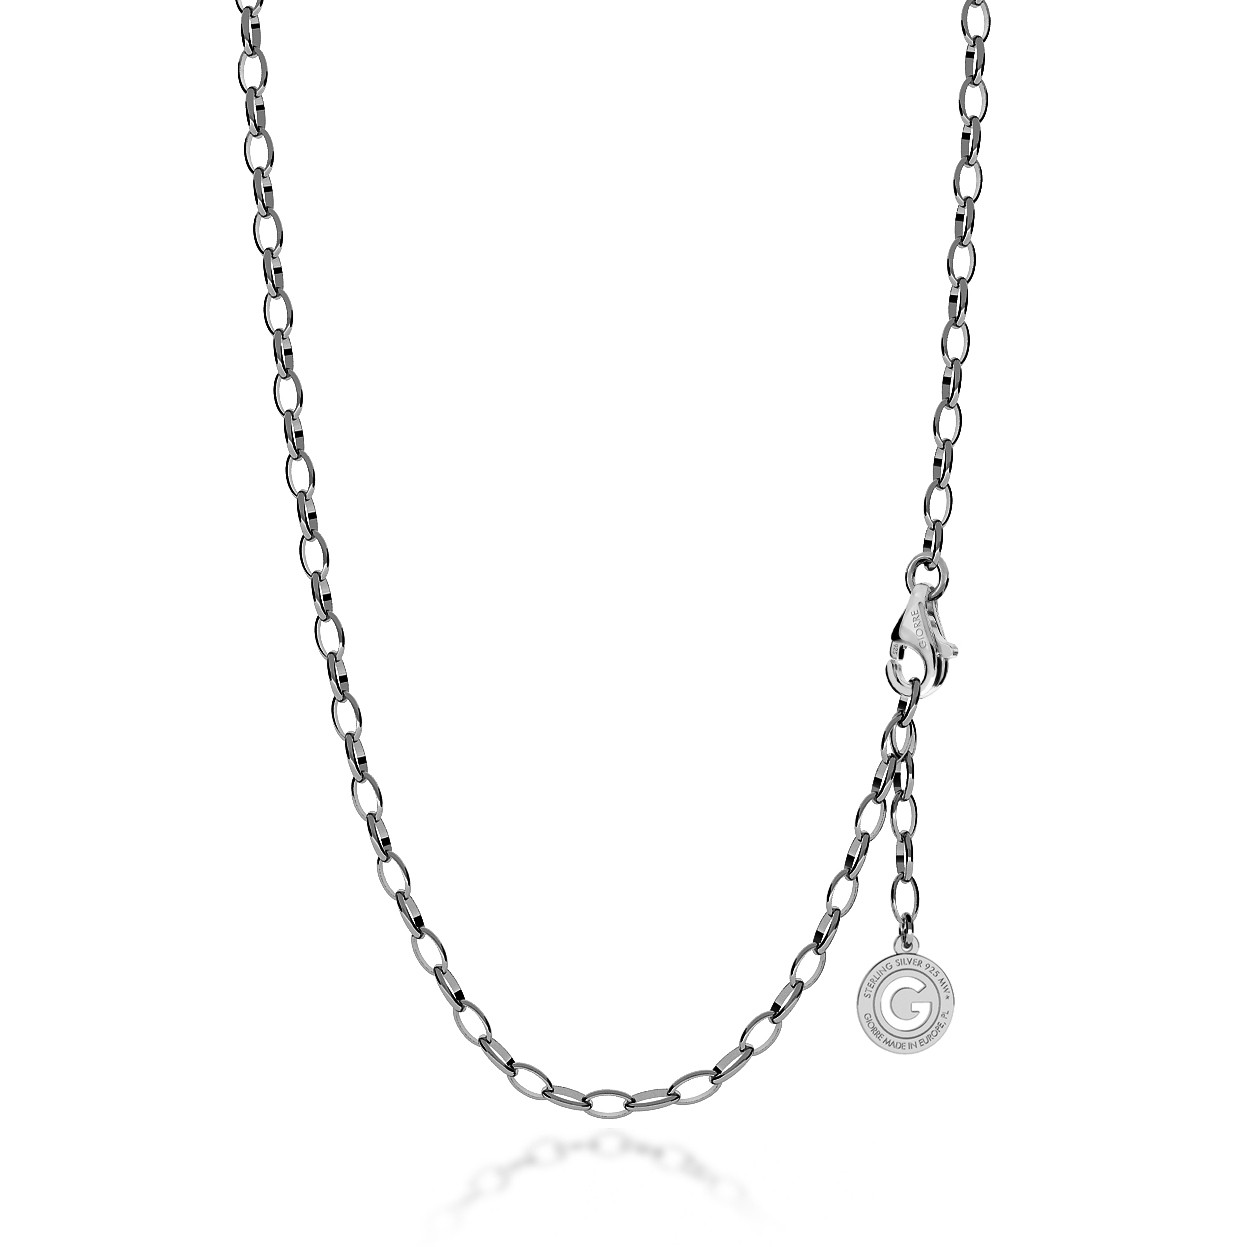 STERLING SILVER NECKLACE 55-65 CM BLACK RHODIUM, LIGHT RHODIUM CLASP, LINK 6X4 MM